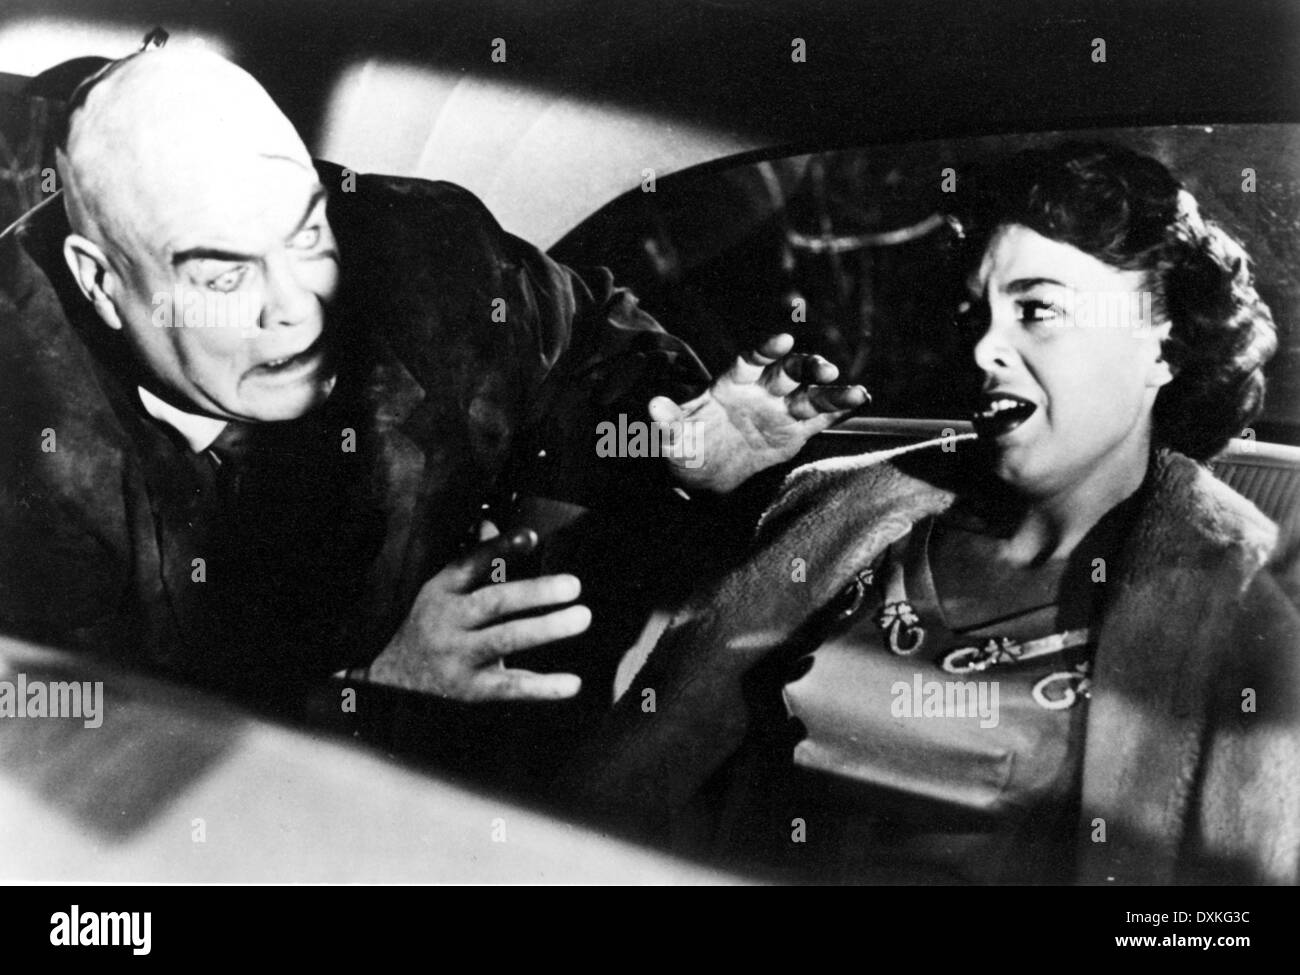 PLAN 9 FROM OUTER SPACE - Stock Image